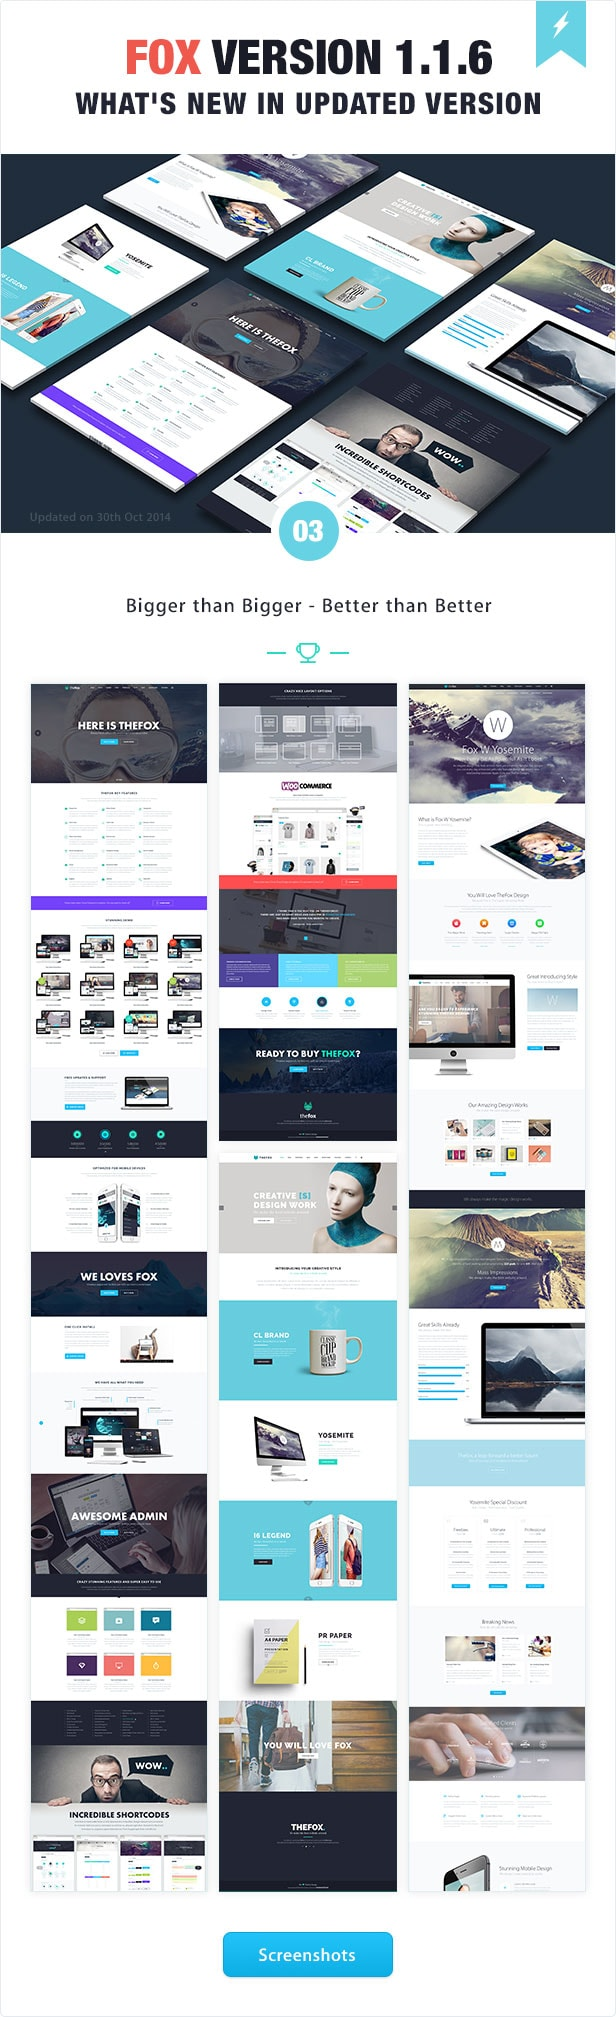 thefox 240 psd template - the best on Envato Market - Themeforest's trending theme